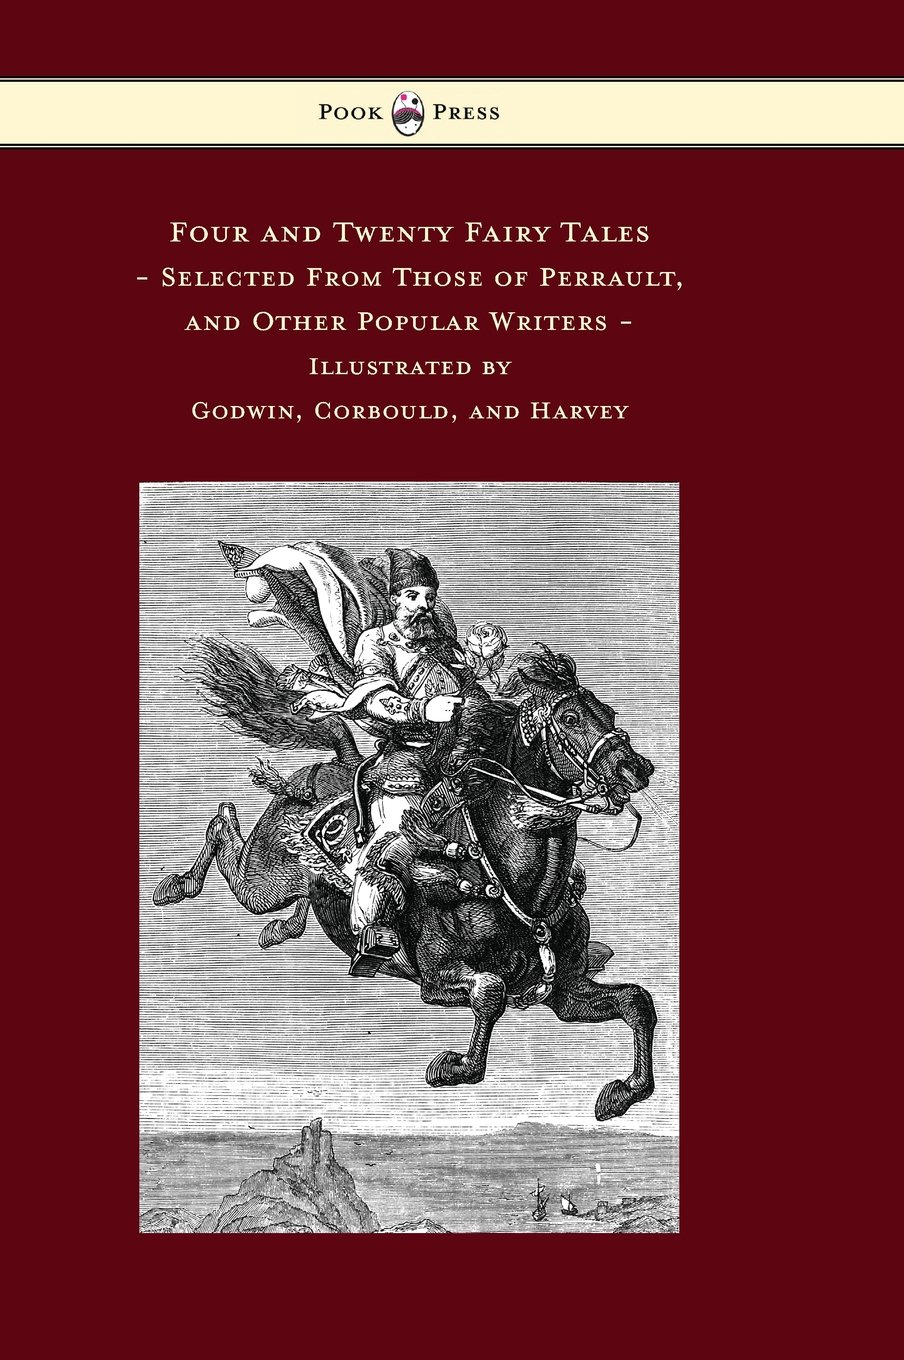 Four and Twenty Fairy Tales, Selected From Those of Perrault, and Other Popular Writers - Illustrated by Godwin, Corbould, and Harvey ebook